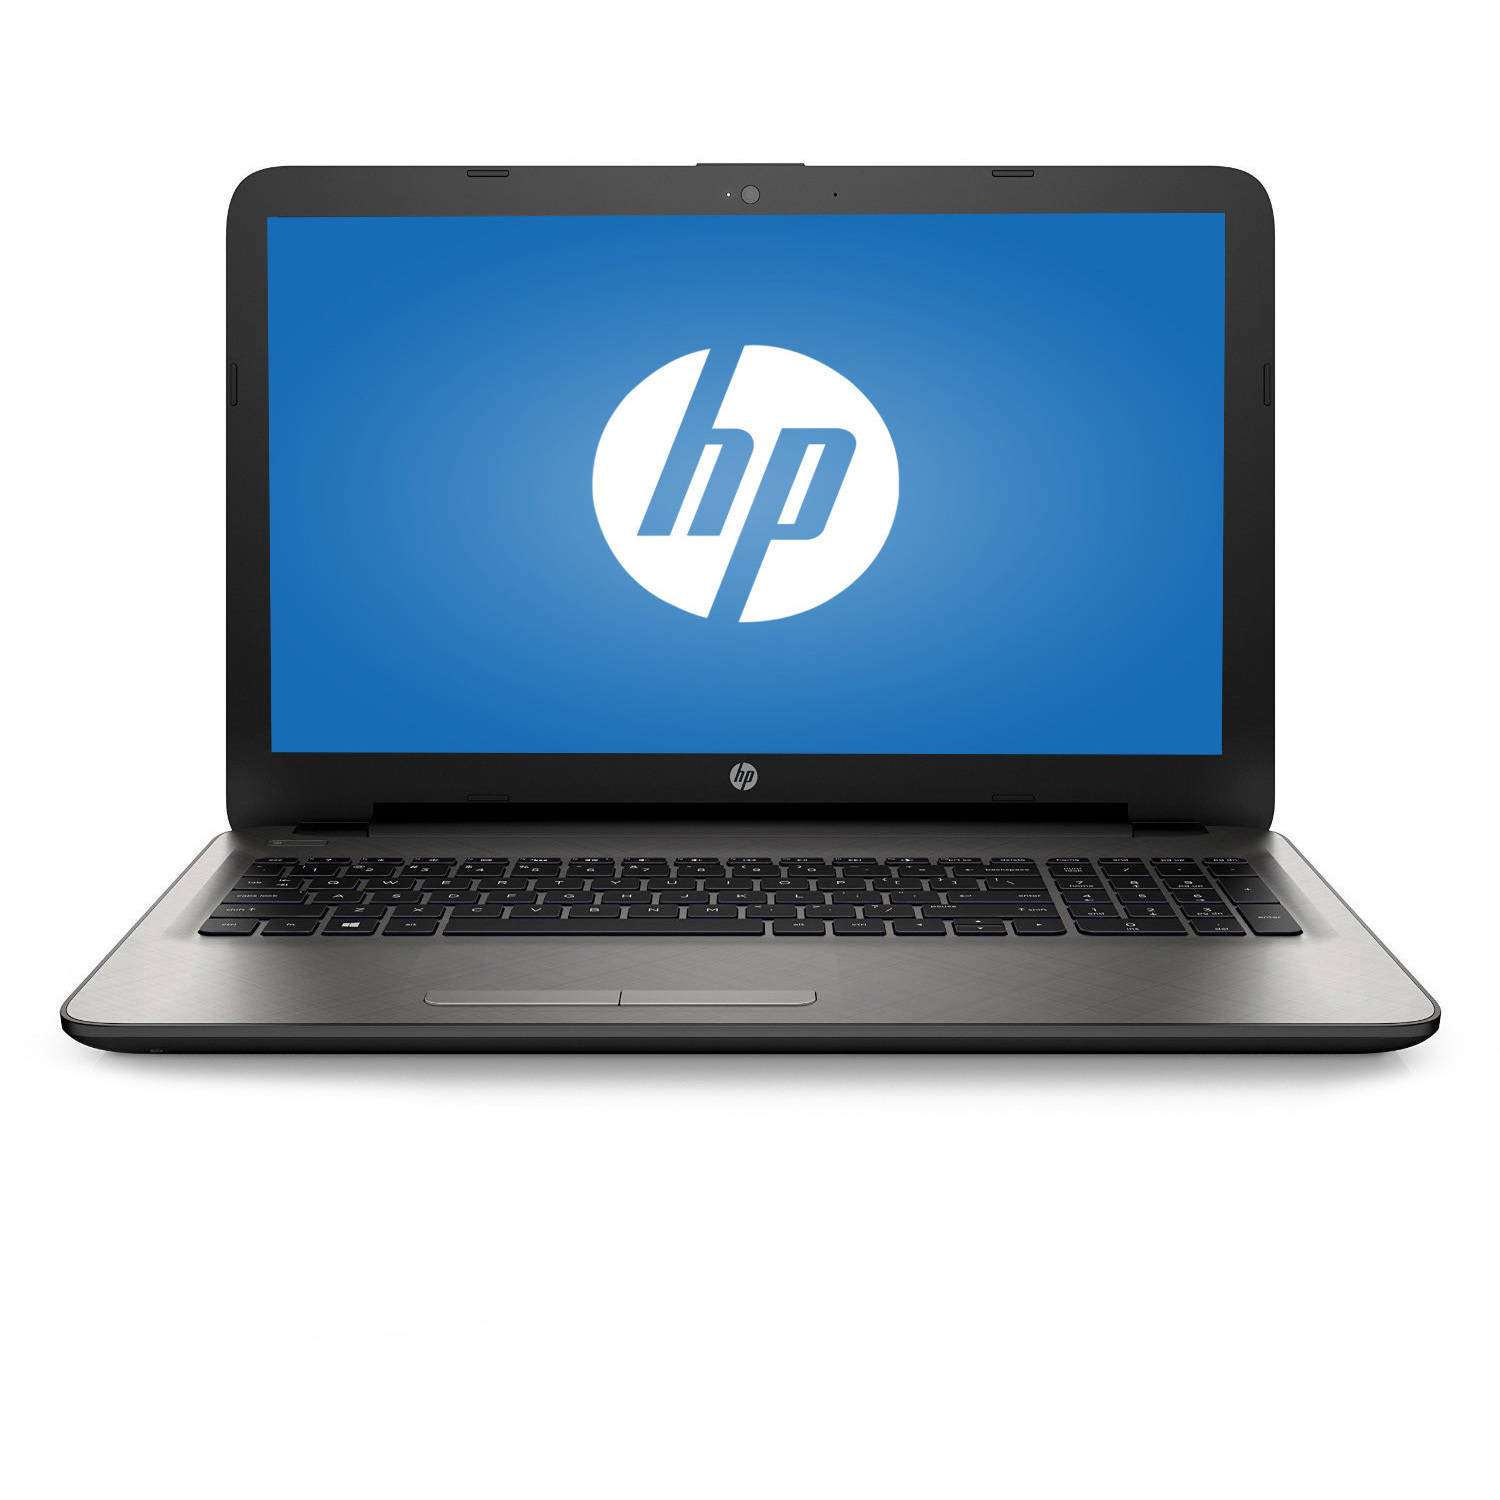 "Refurbished HP Black 15.6"" 15-ac161nr N0N85UAR#ABA Laptop PC with Intel Pentium 3825U Processor, 8GB Memory, 750GB Hard Drive and Windows 10 Home"